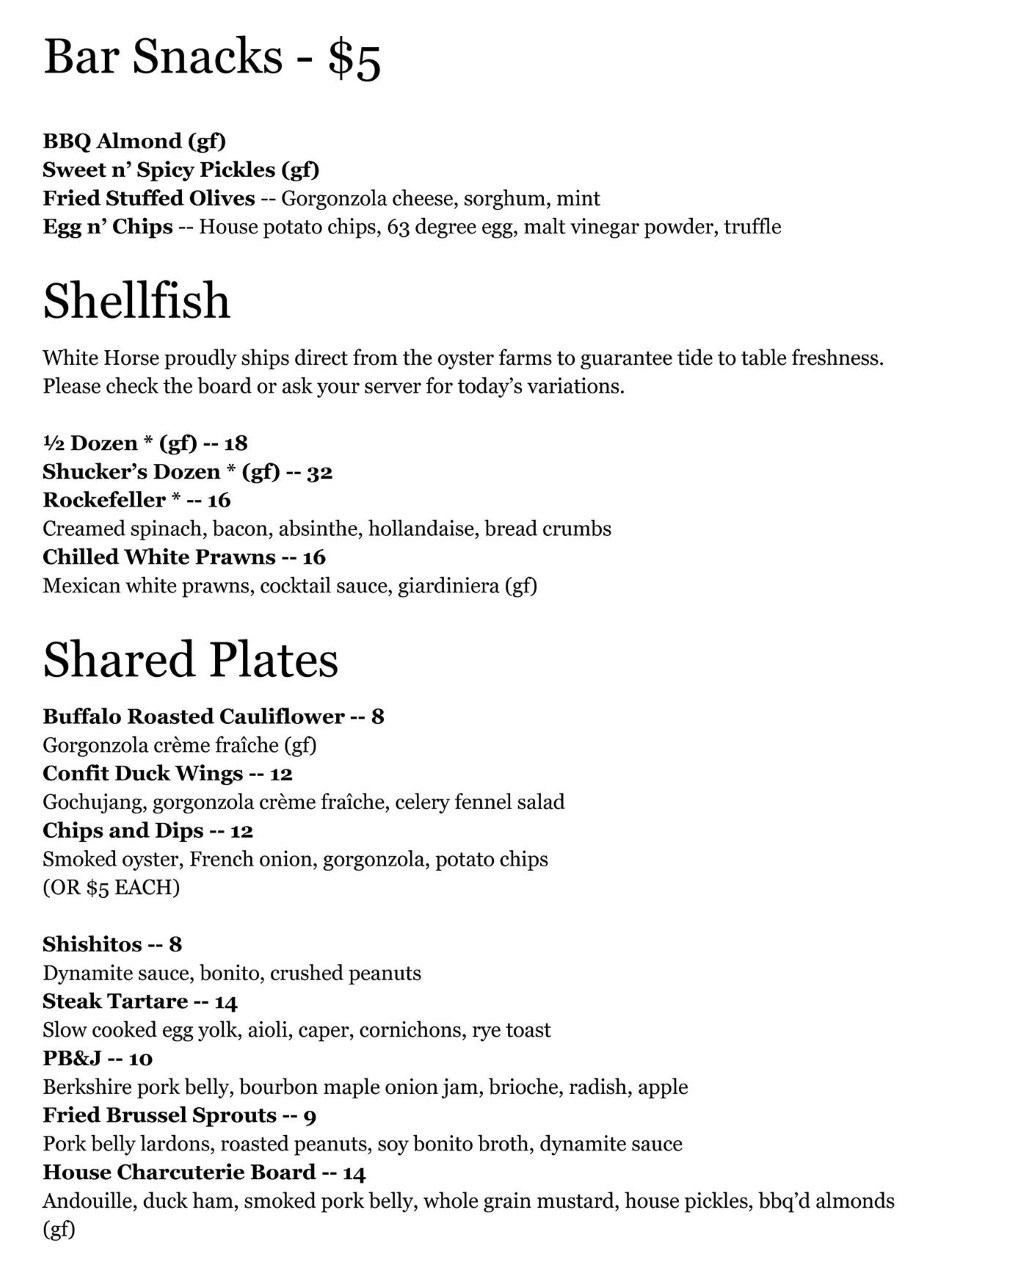 White Horse Spirits and Kitchen menu - bar snacks, shellfish, shared plates